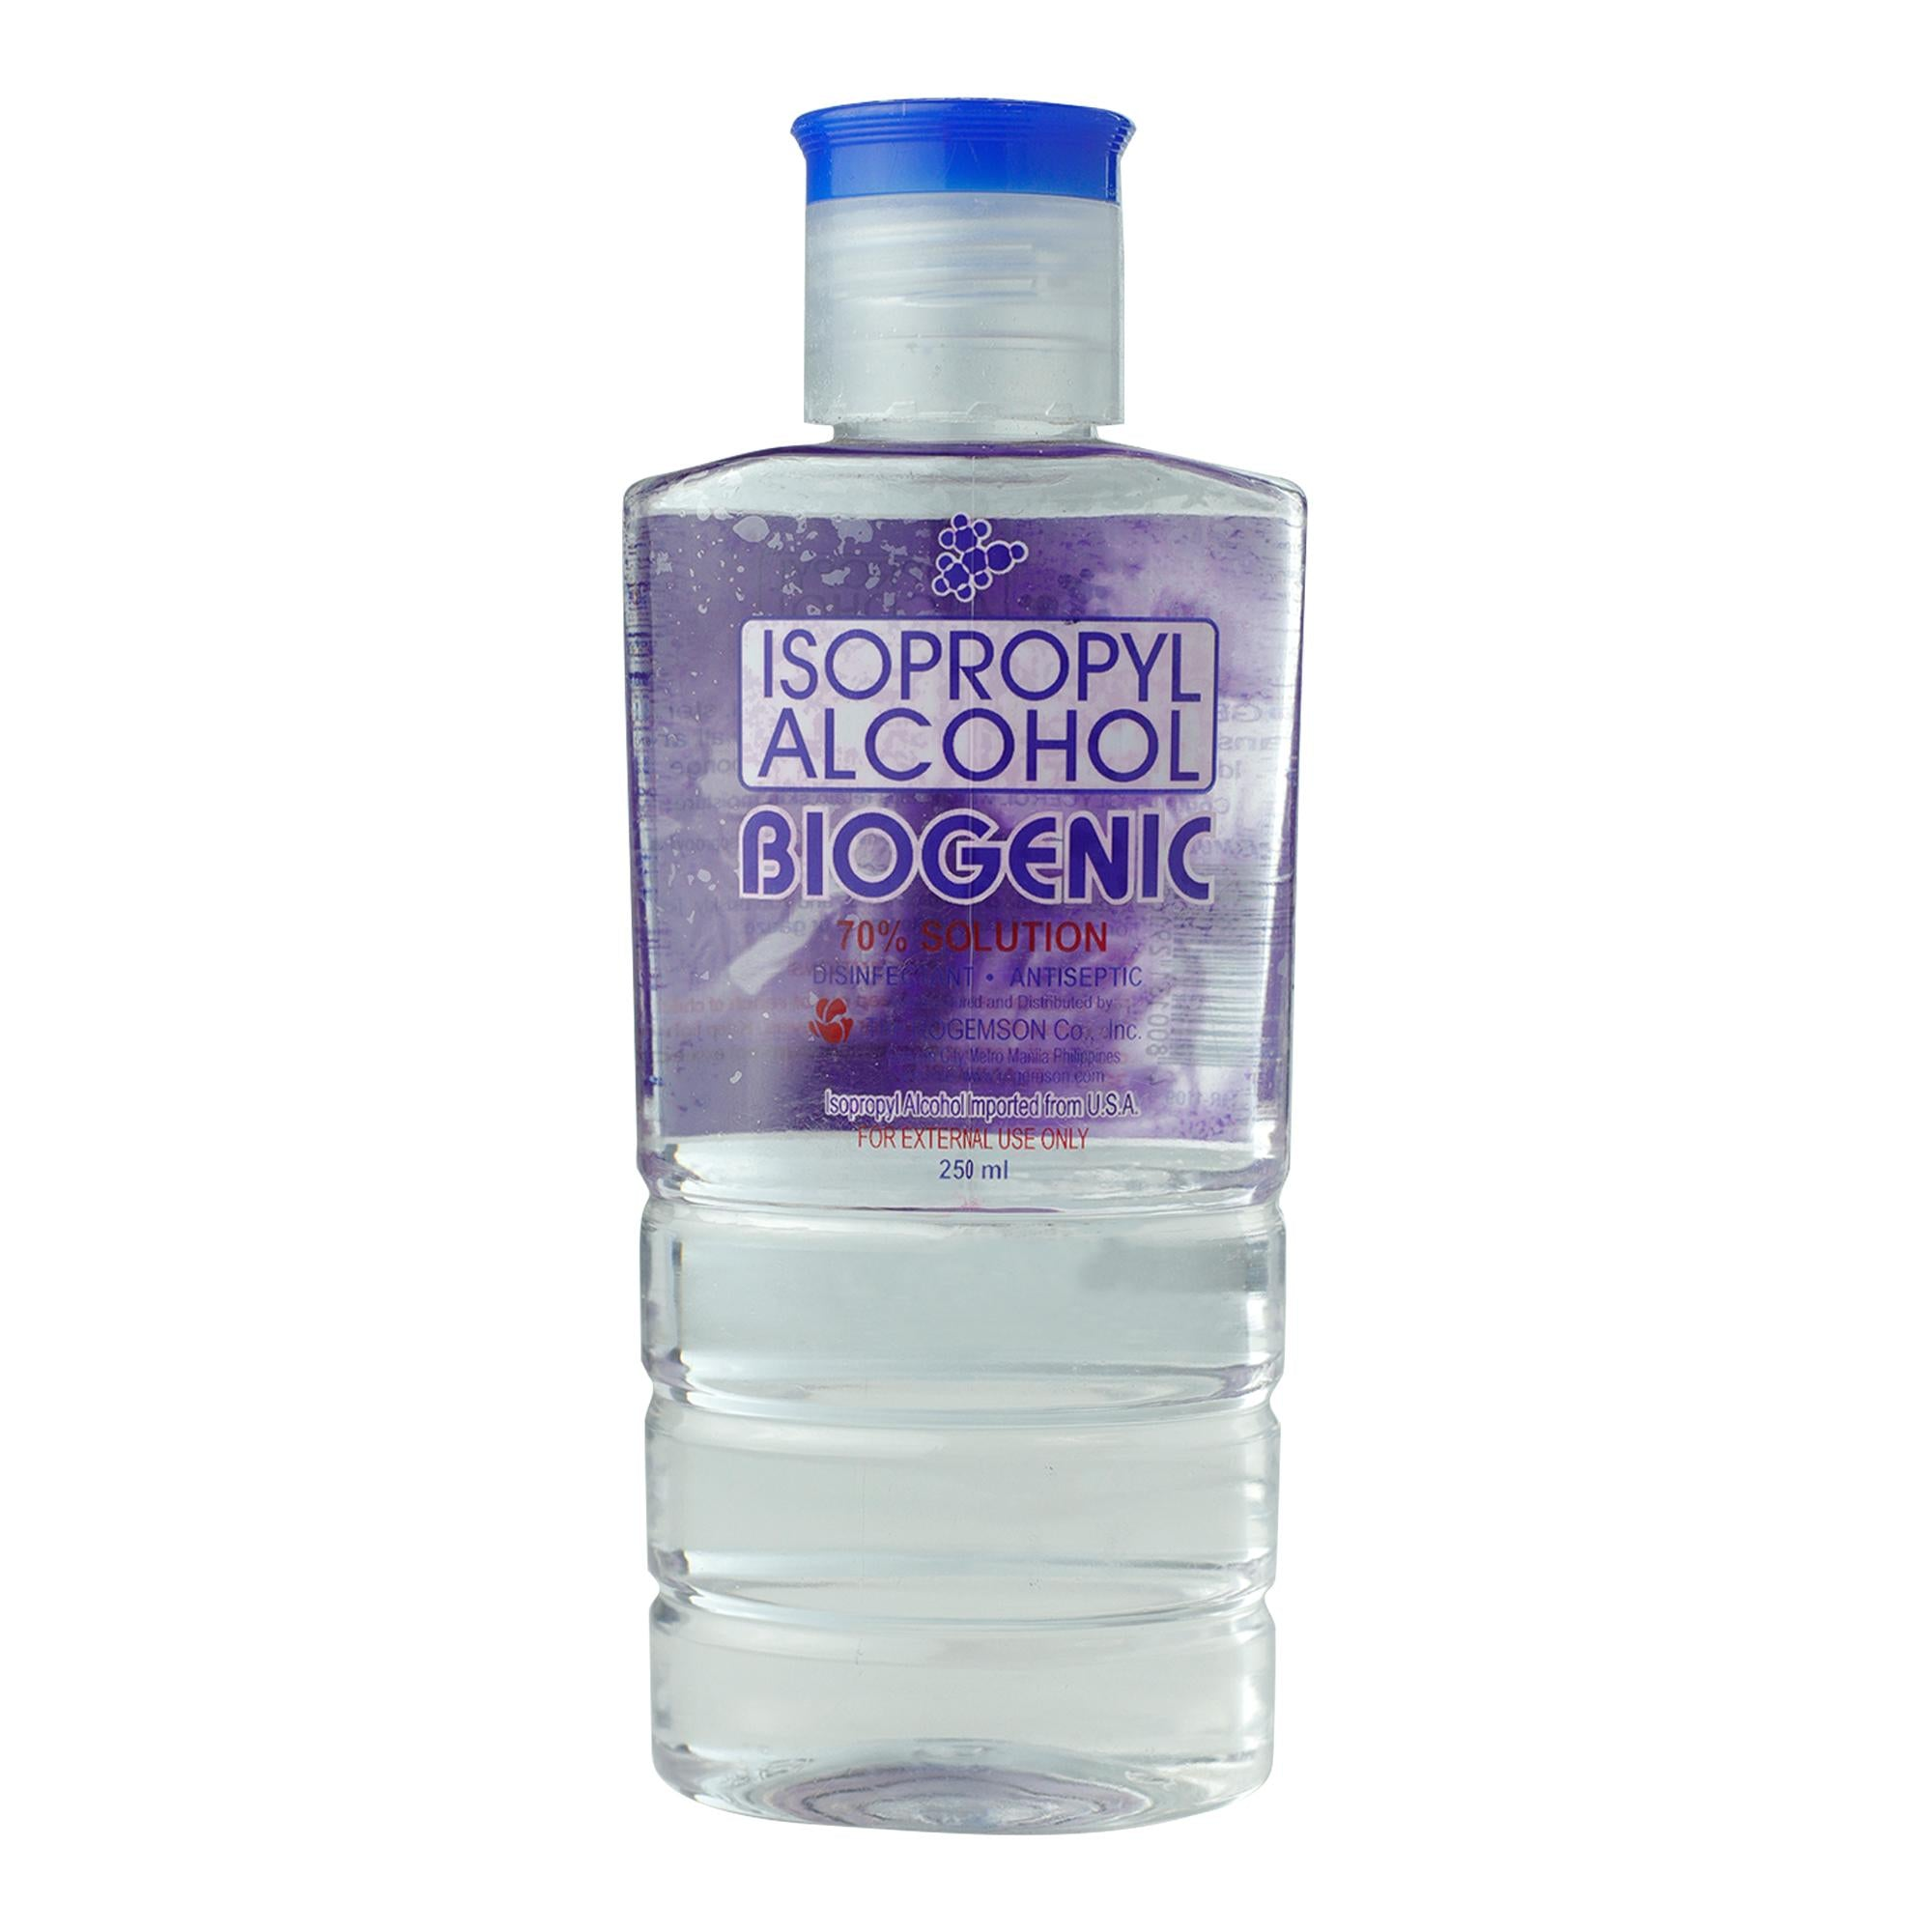 BIOGENIC ALCOHOL ISOPROPYL 70% SOLUTION - JayMaya